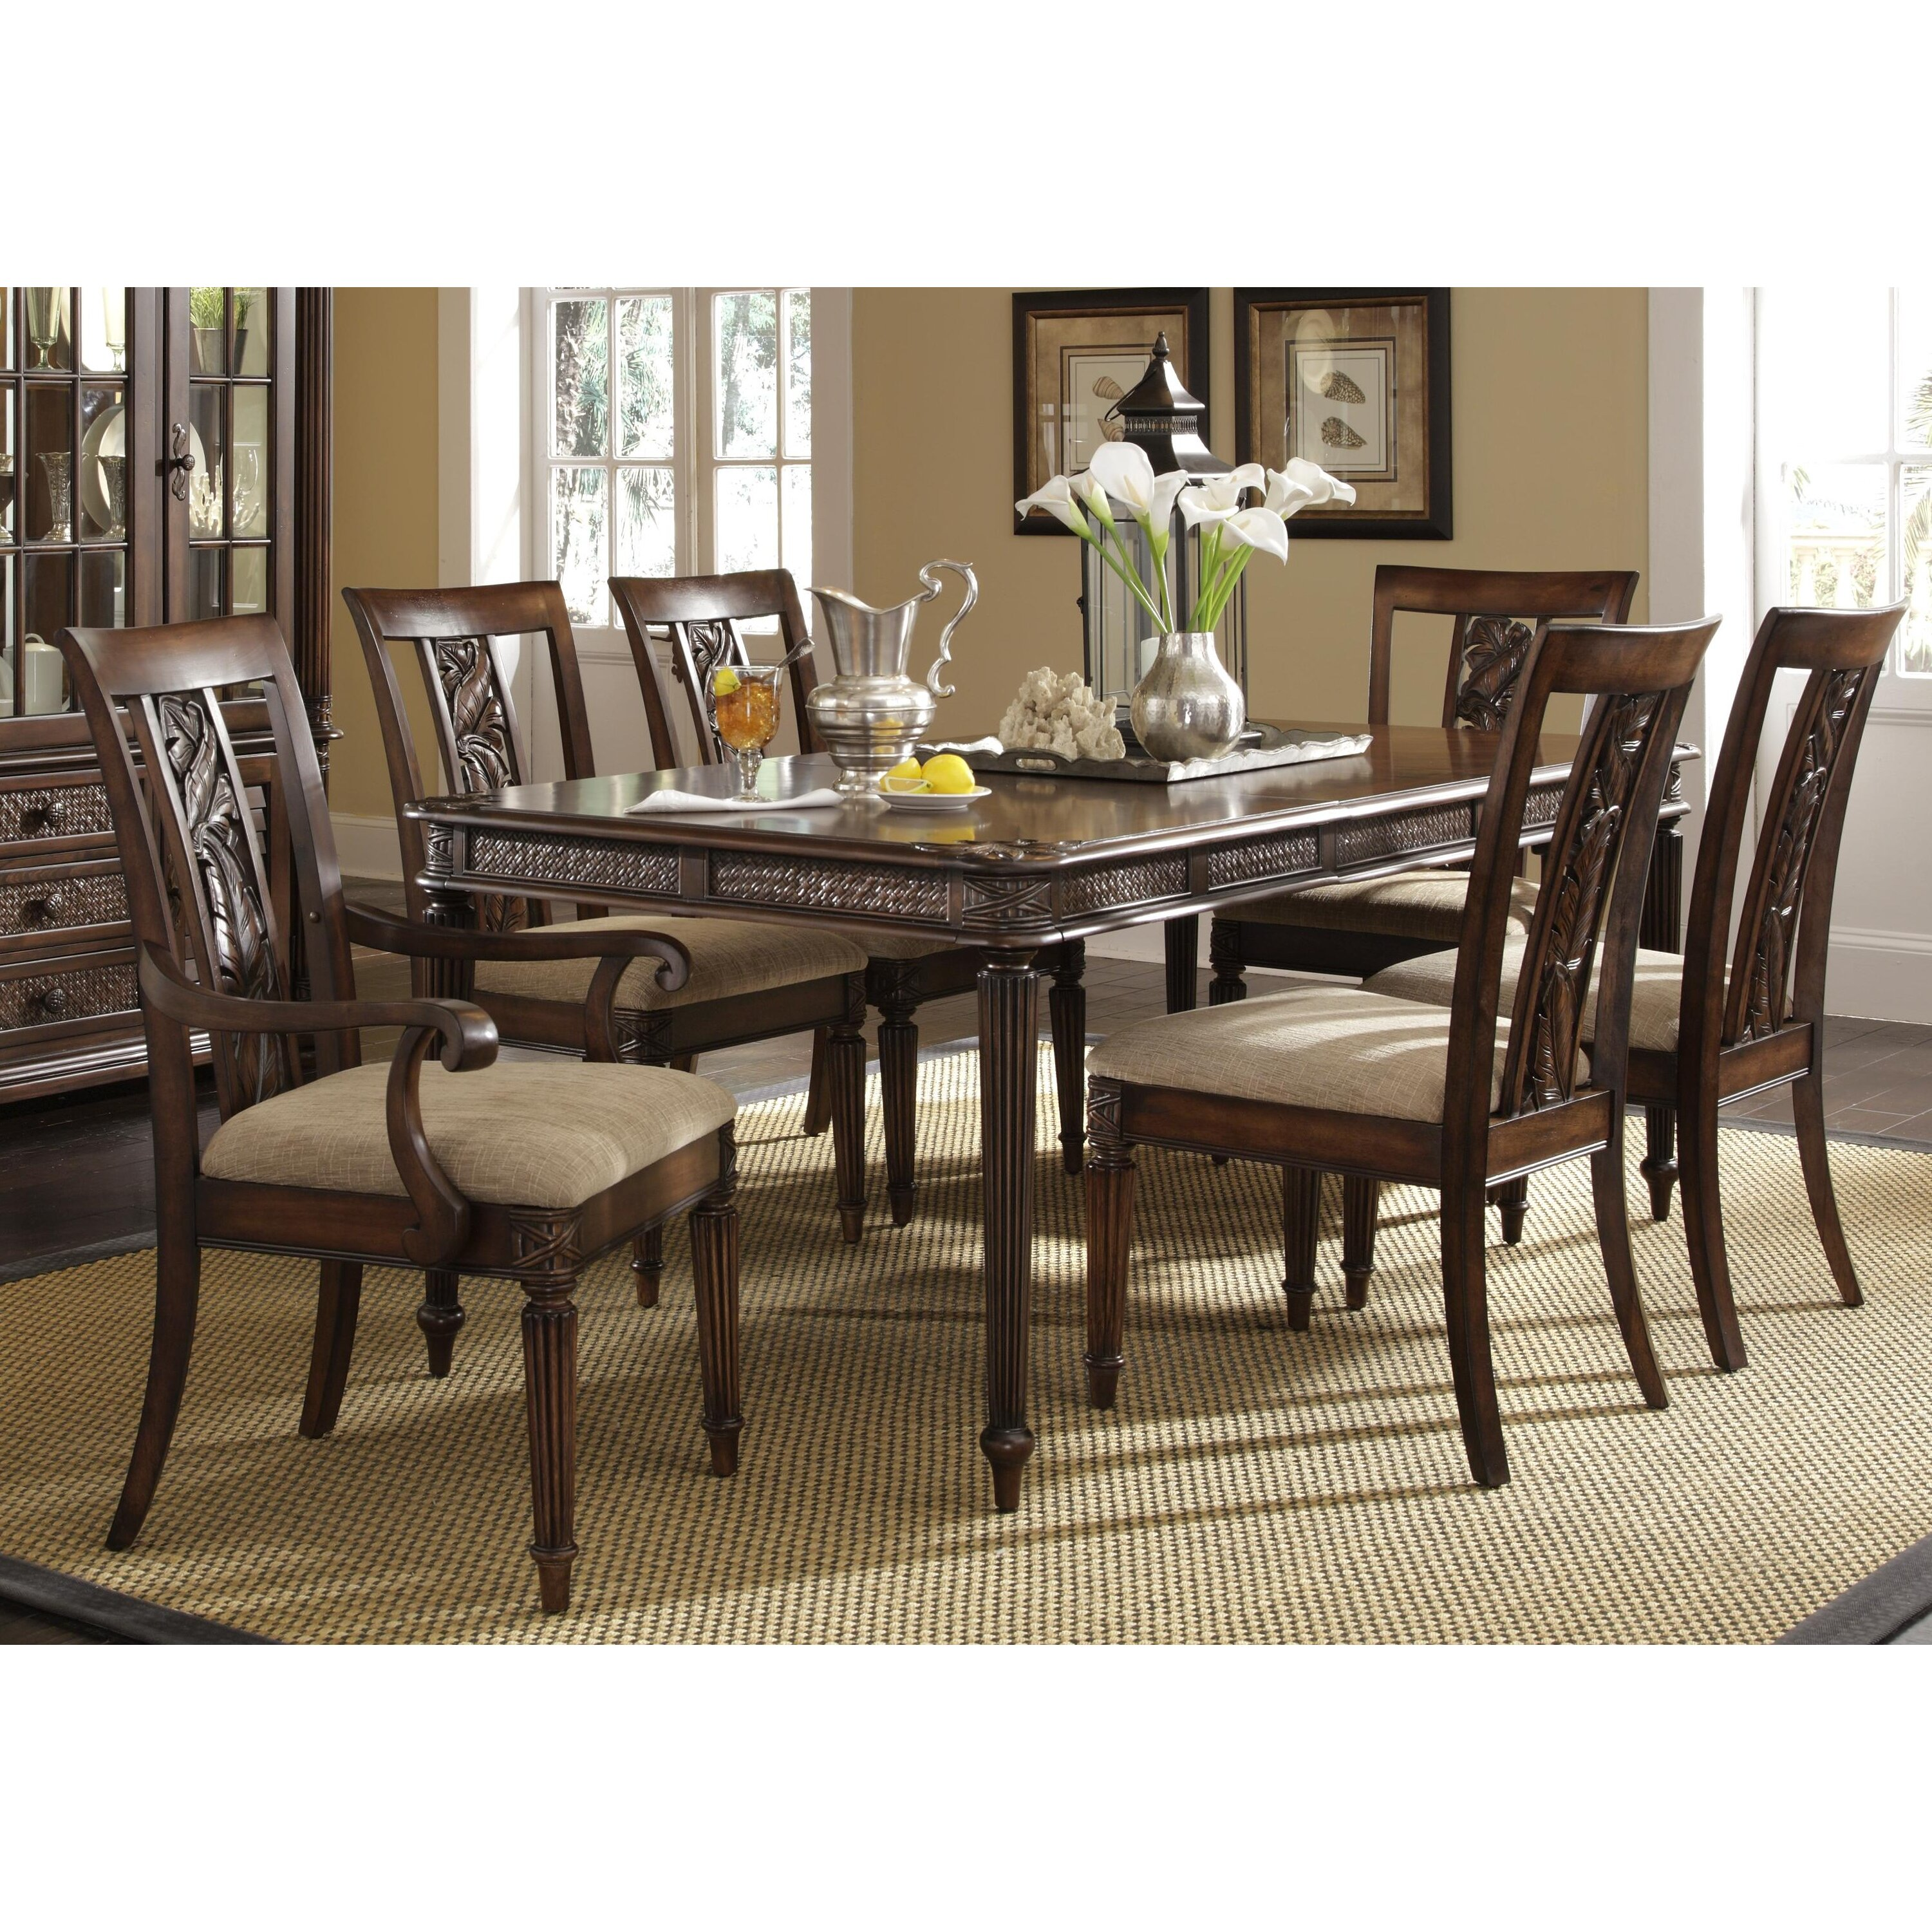 Darby Home Co Palm Court II Extendable Dining Table Wayfair : Palm Court II Extendable Dining Table DBHC1458 from www.wayfair.com size 3001 x 3001 jpeg 1333kB